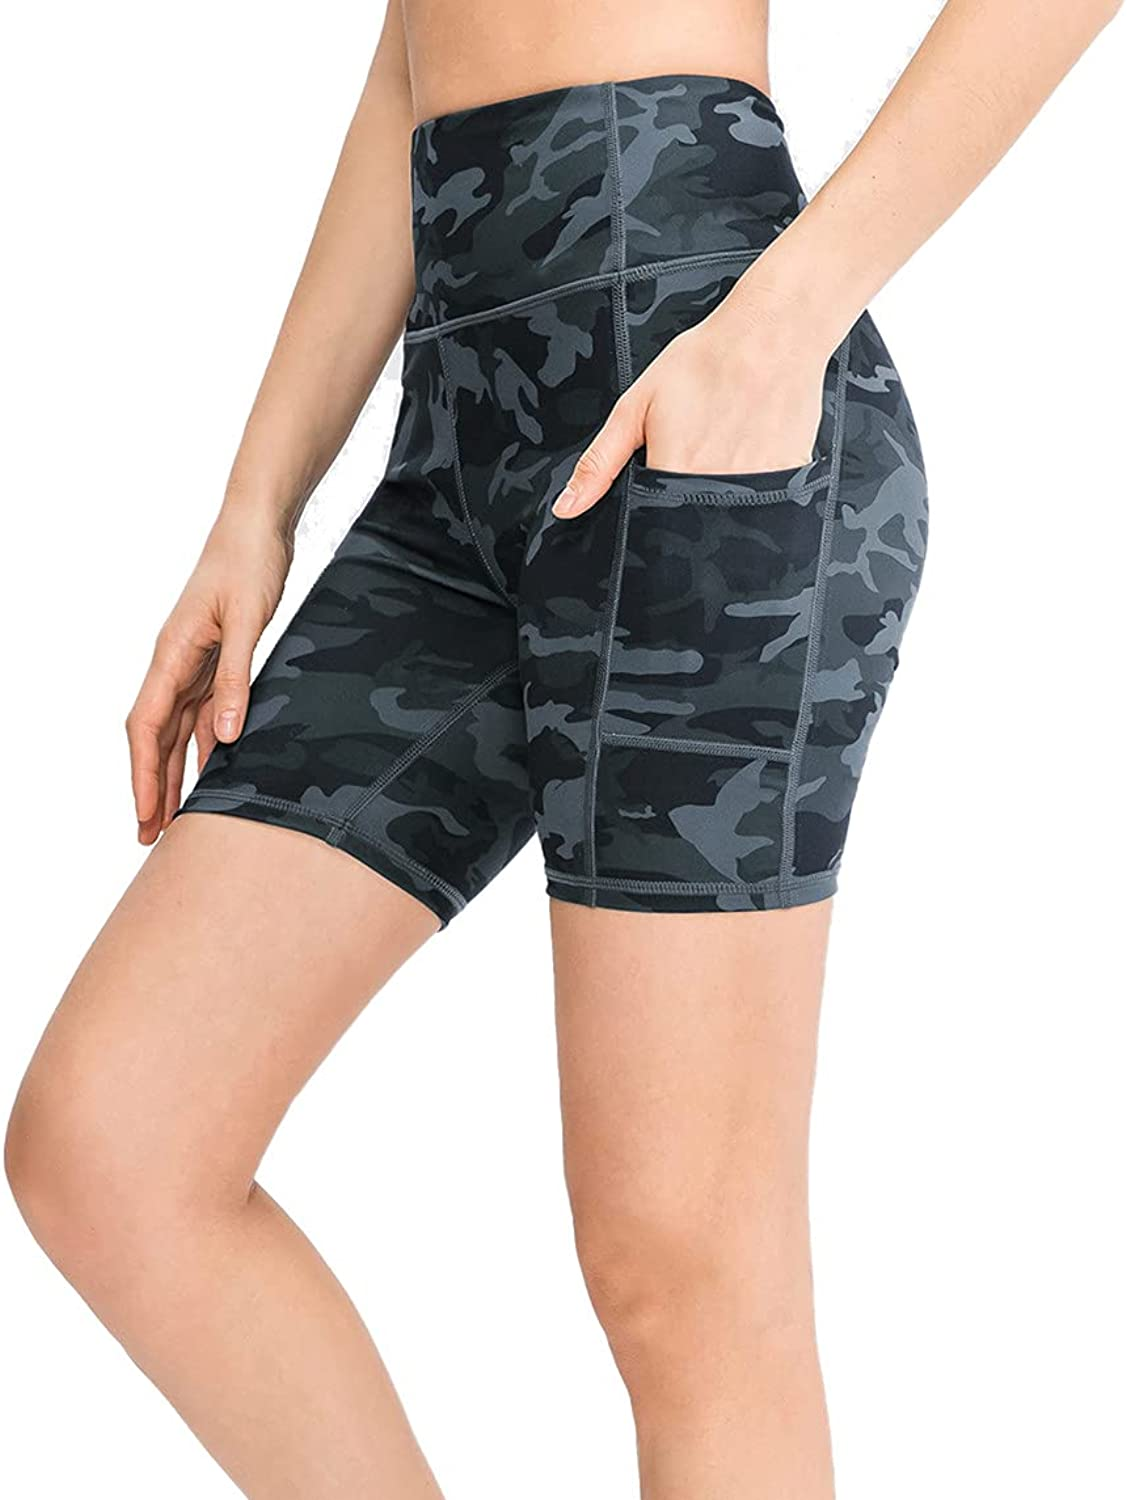 NUOVA ACTIVE Women's High Waist Print Athletic Shorts with 2 Outside Pockets Workout Tummy Control Yoga Shorts